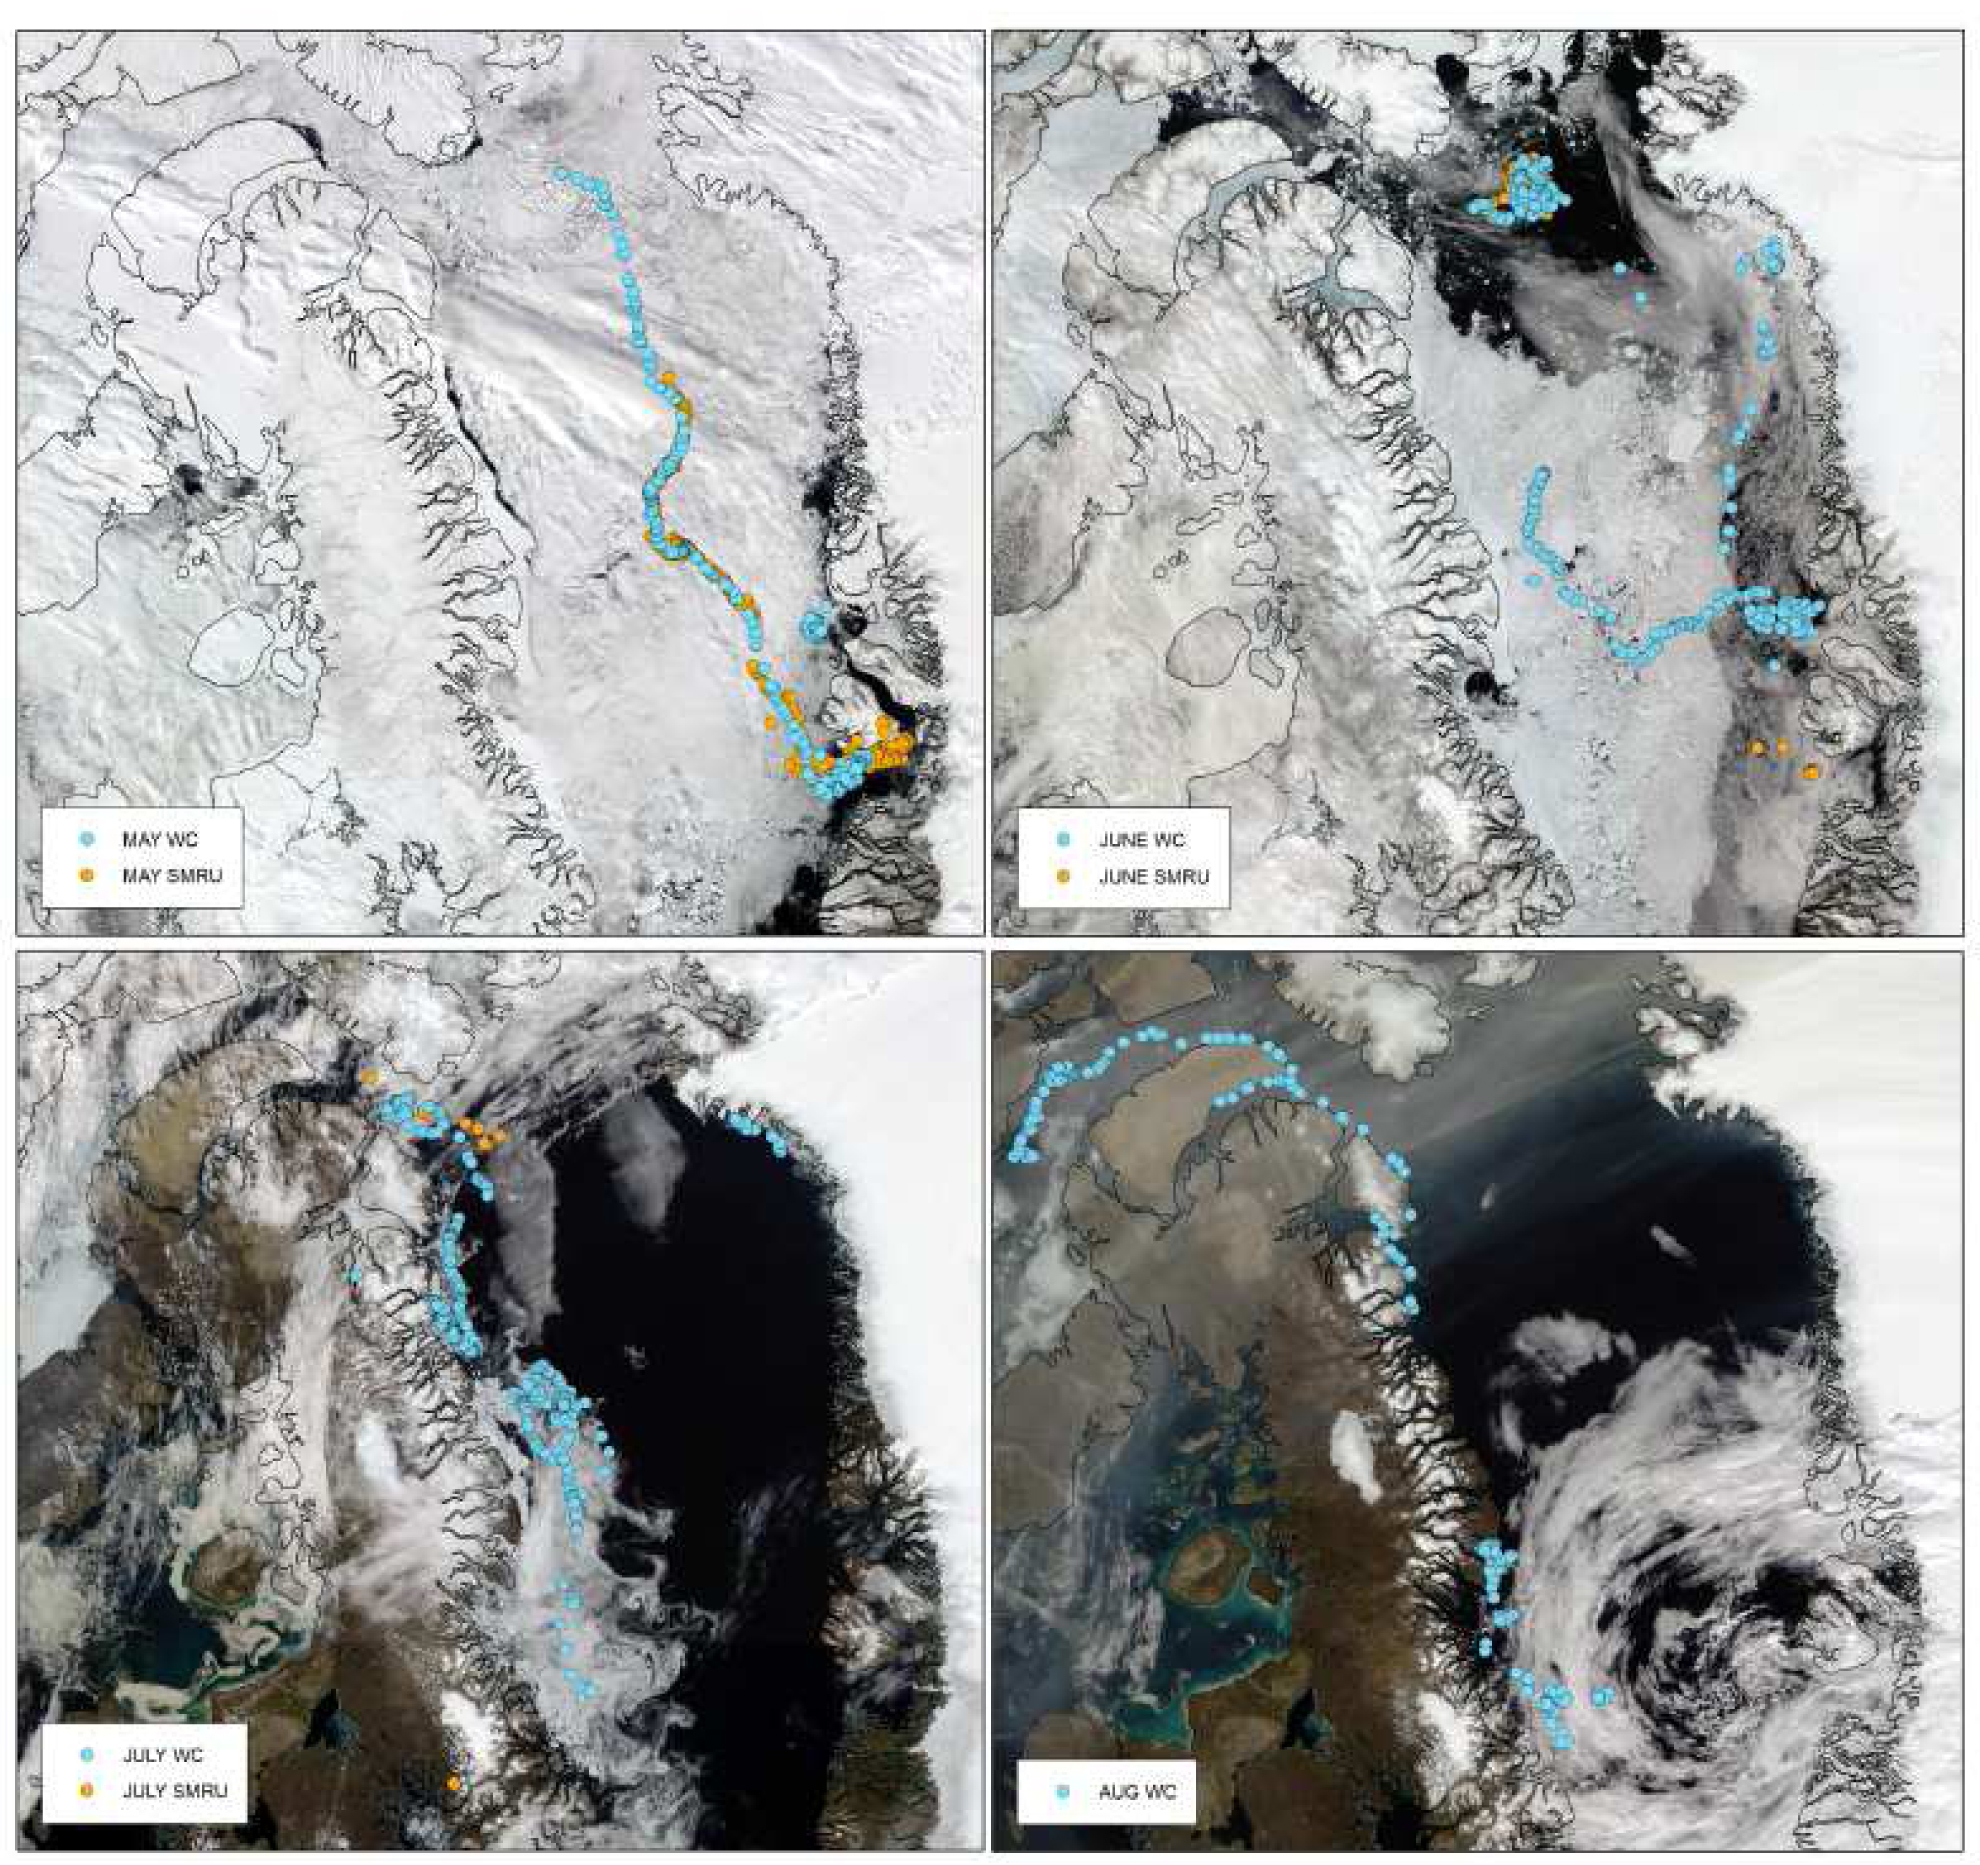 Satellite images showing the sea ice cover in the area of the study and the bowhead whale tracks, month by month from May to August, with the two type of tags attached to the same whale. (Credit [Teilmann et al. 2020])